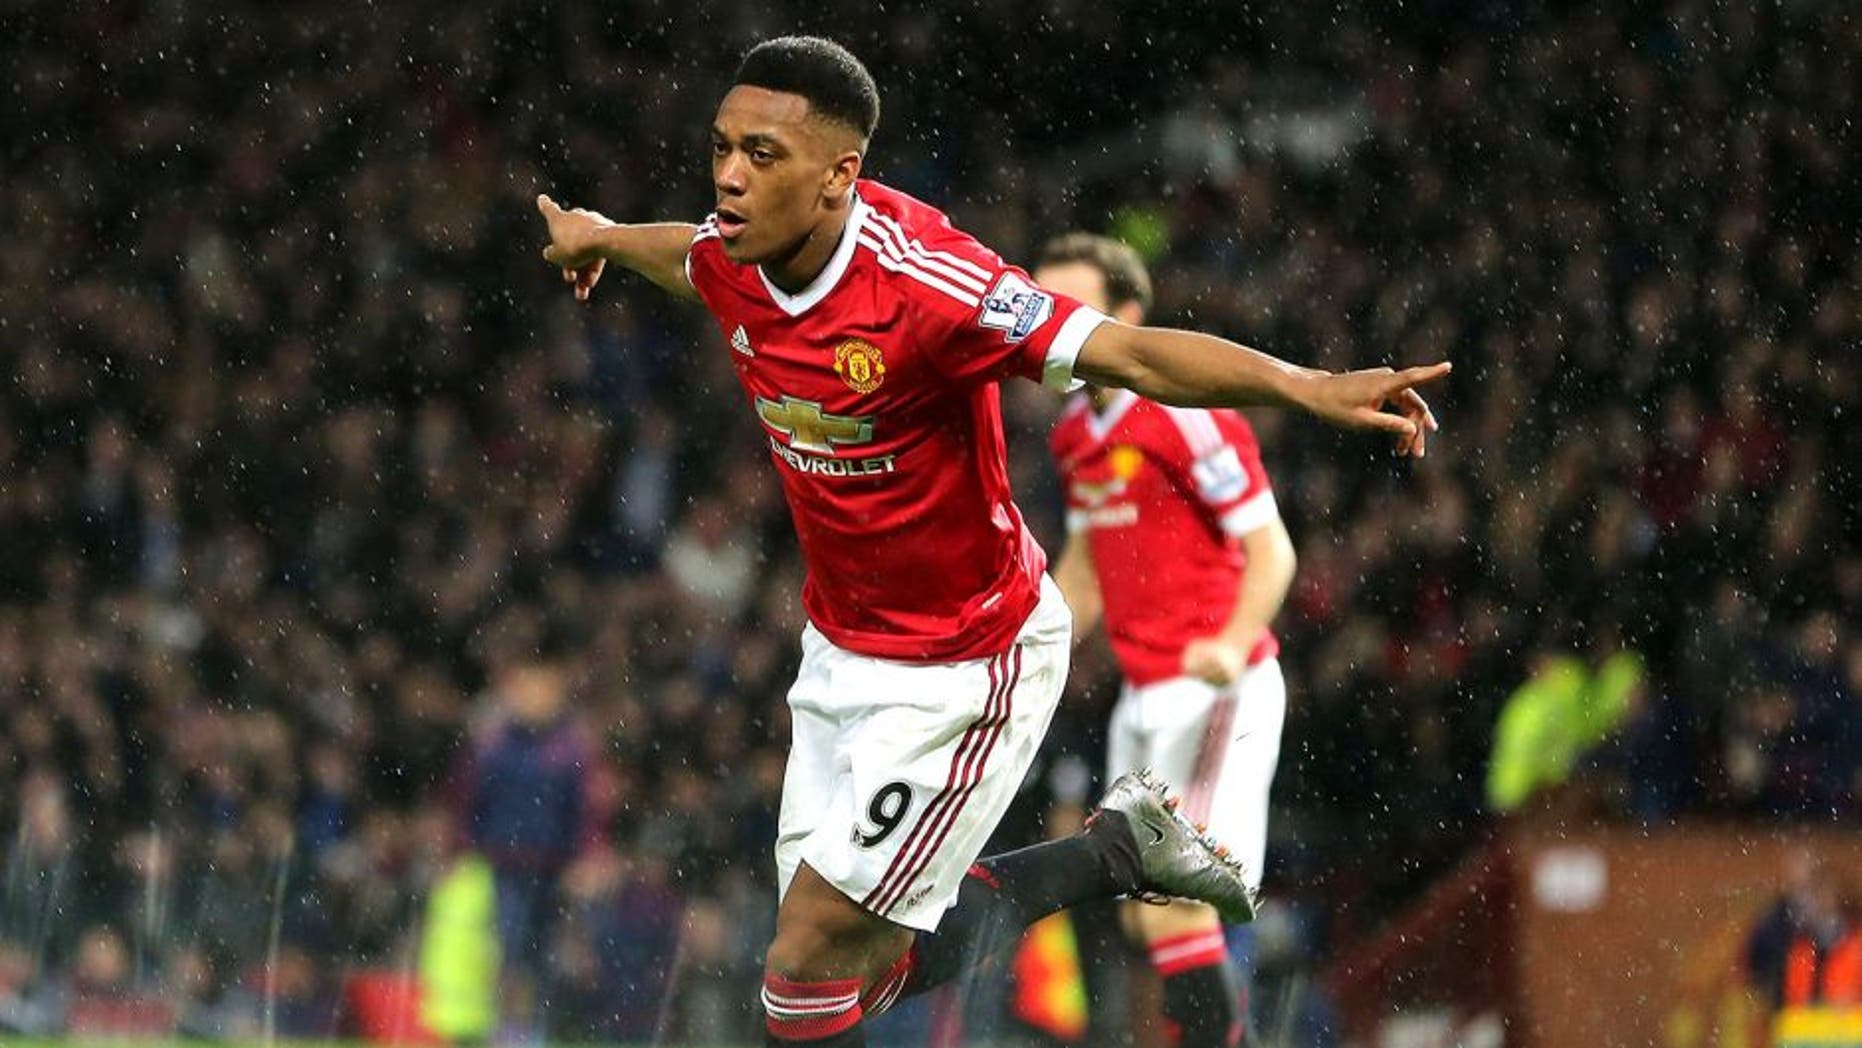 MANCHESTER, ENGLAND - JANUARY 02: Anthony Martial of Manchester United celebrates after scoring a goal to make it 1-0 during the Barclays Premier League match between Manchester United and Swansea City at Old Trafford on January 2, 2016 in Manchester, England. (Photo by James Baylis - AMA/Getty Images)